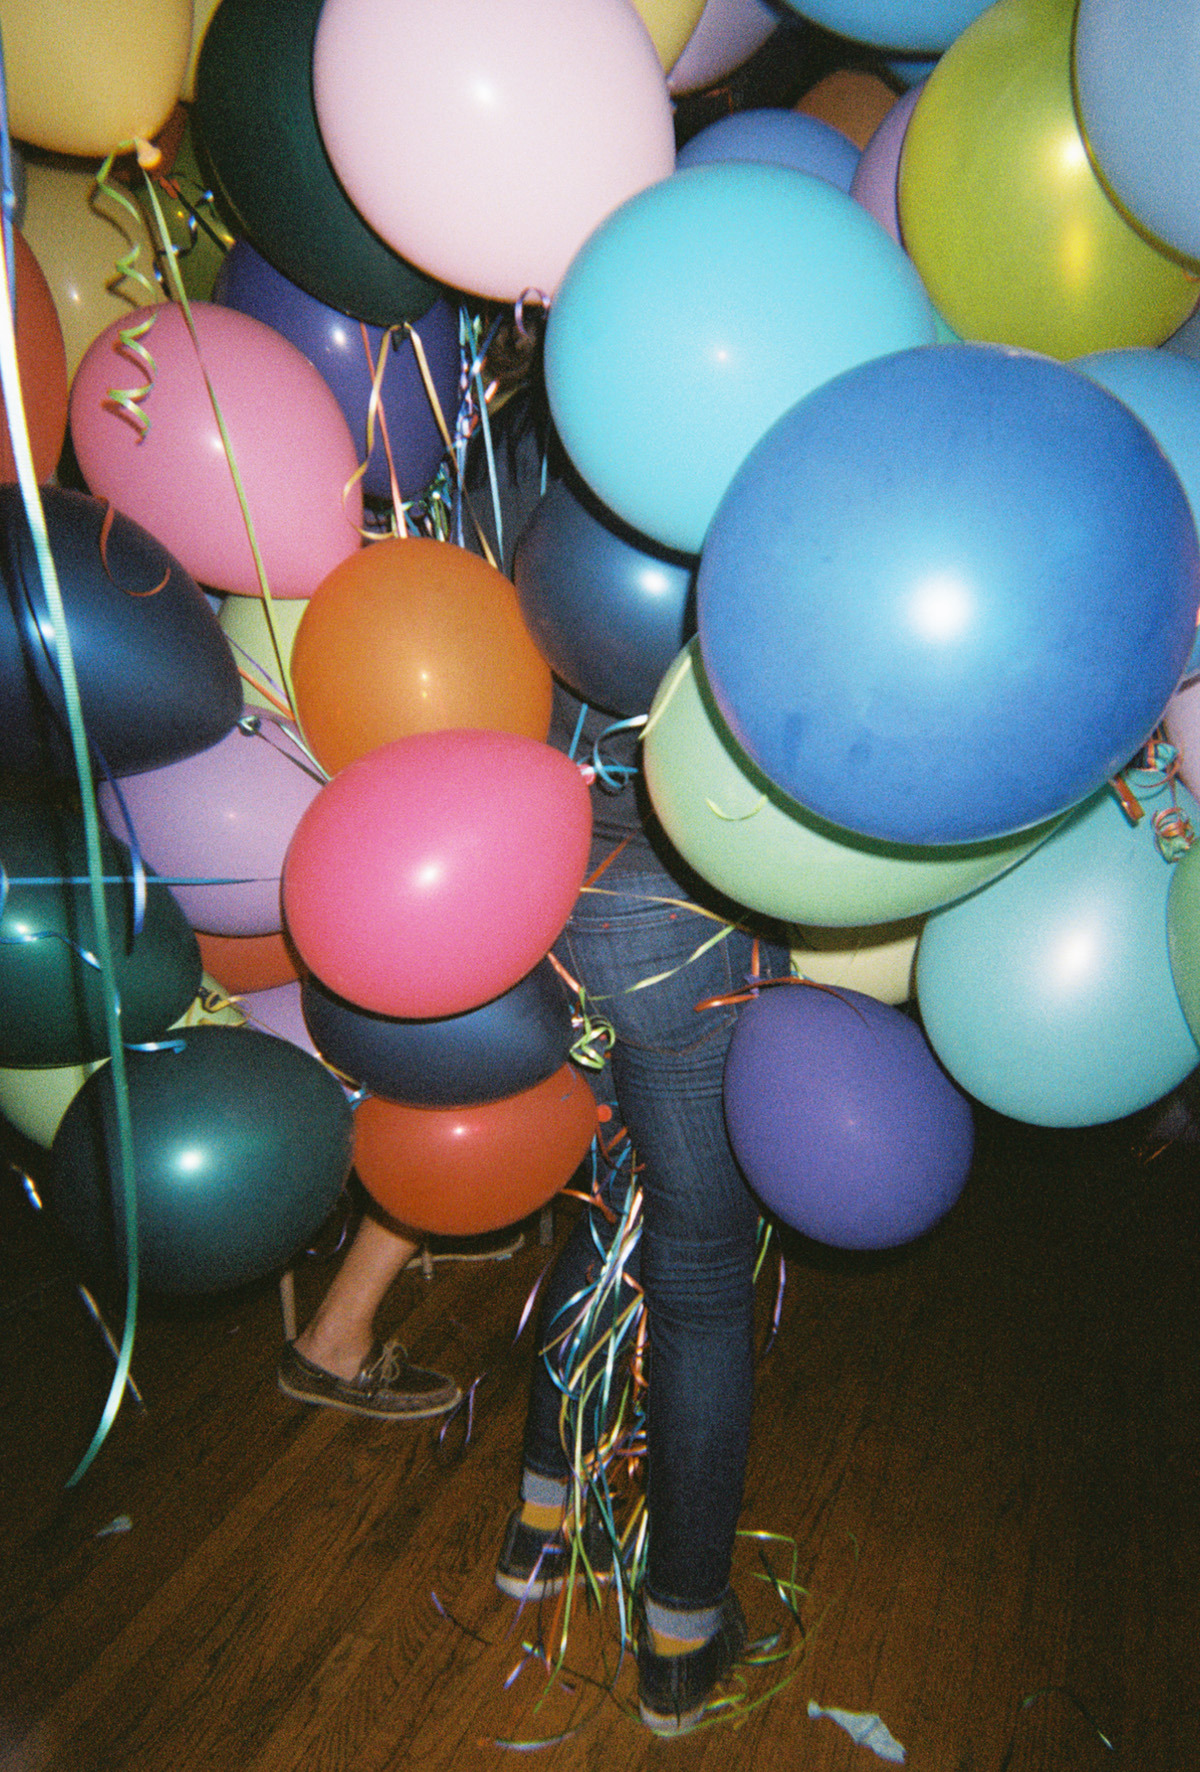 Joe's birthday balloons.  Fairfax, Los Angeles - April 2012 ©Lauren Randolph